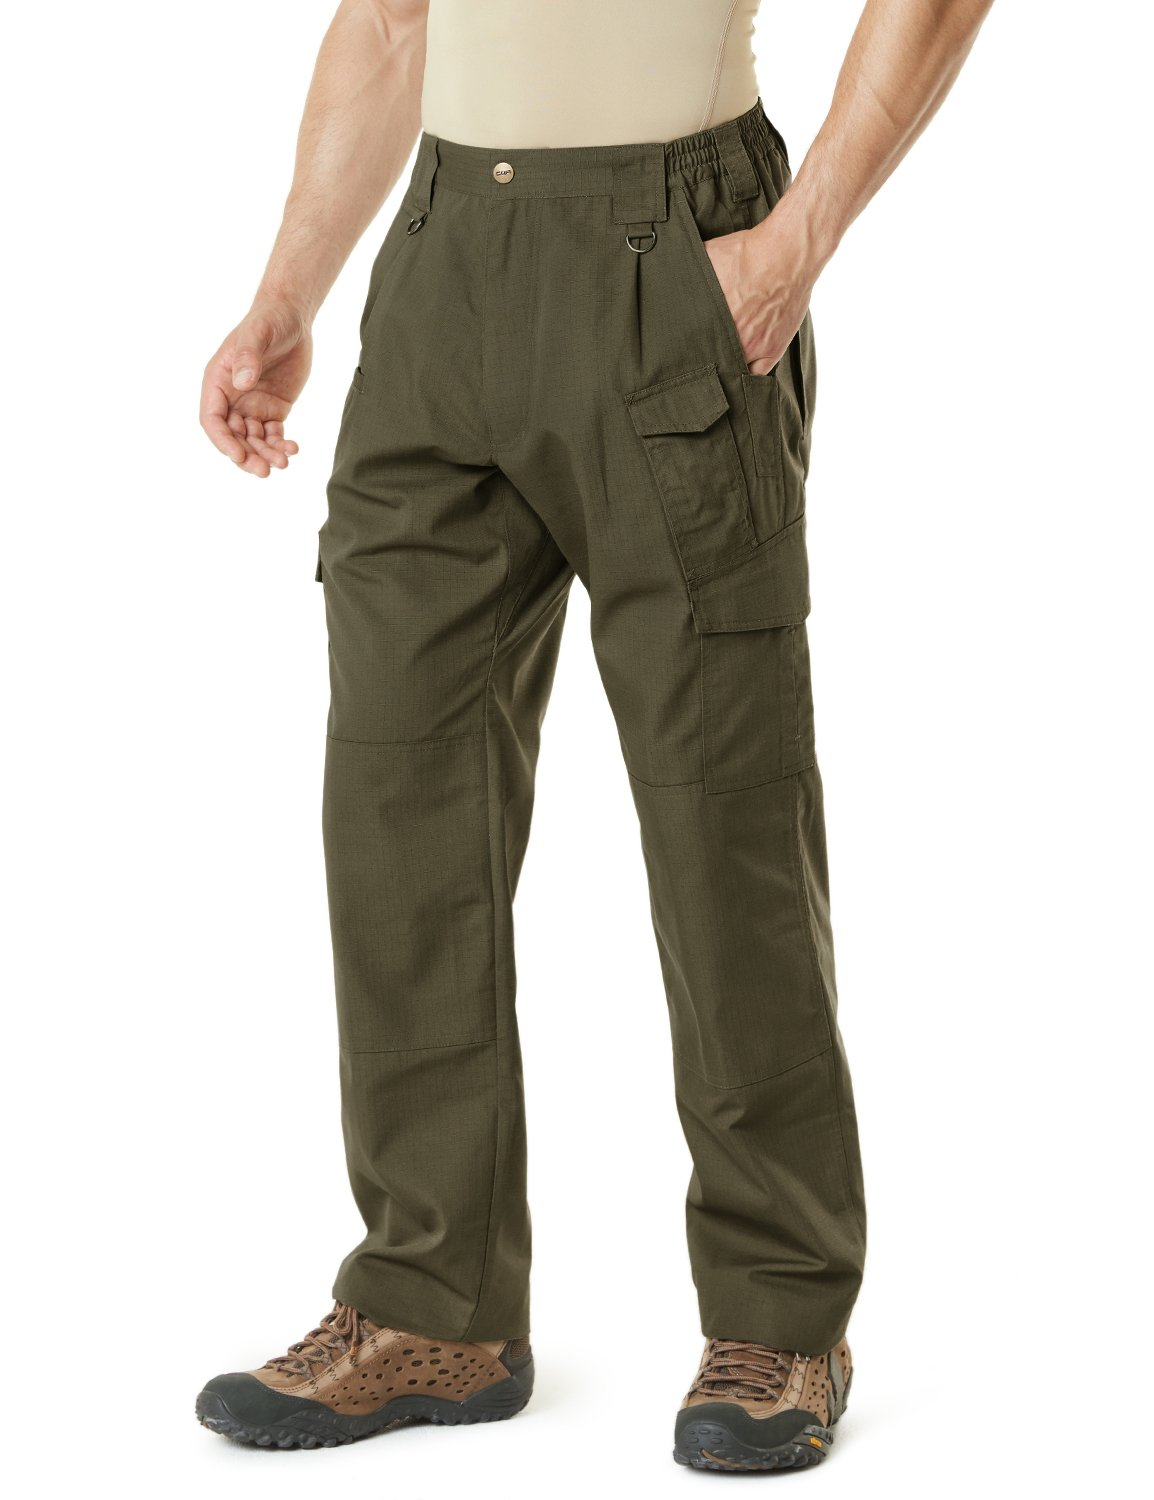 CQR CQ-TLP105-TDR_32W/32L Men's Tactical Pants Lightweight EDC Assault Cargo TLP105